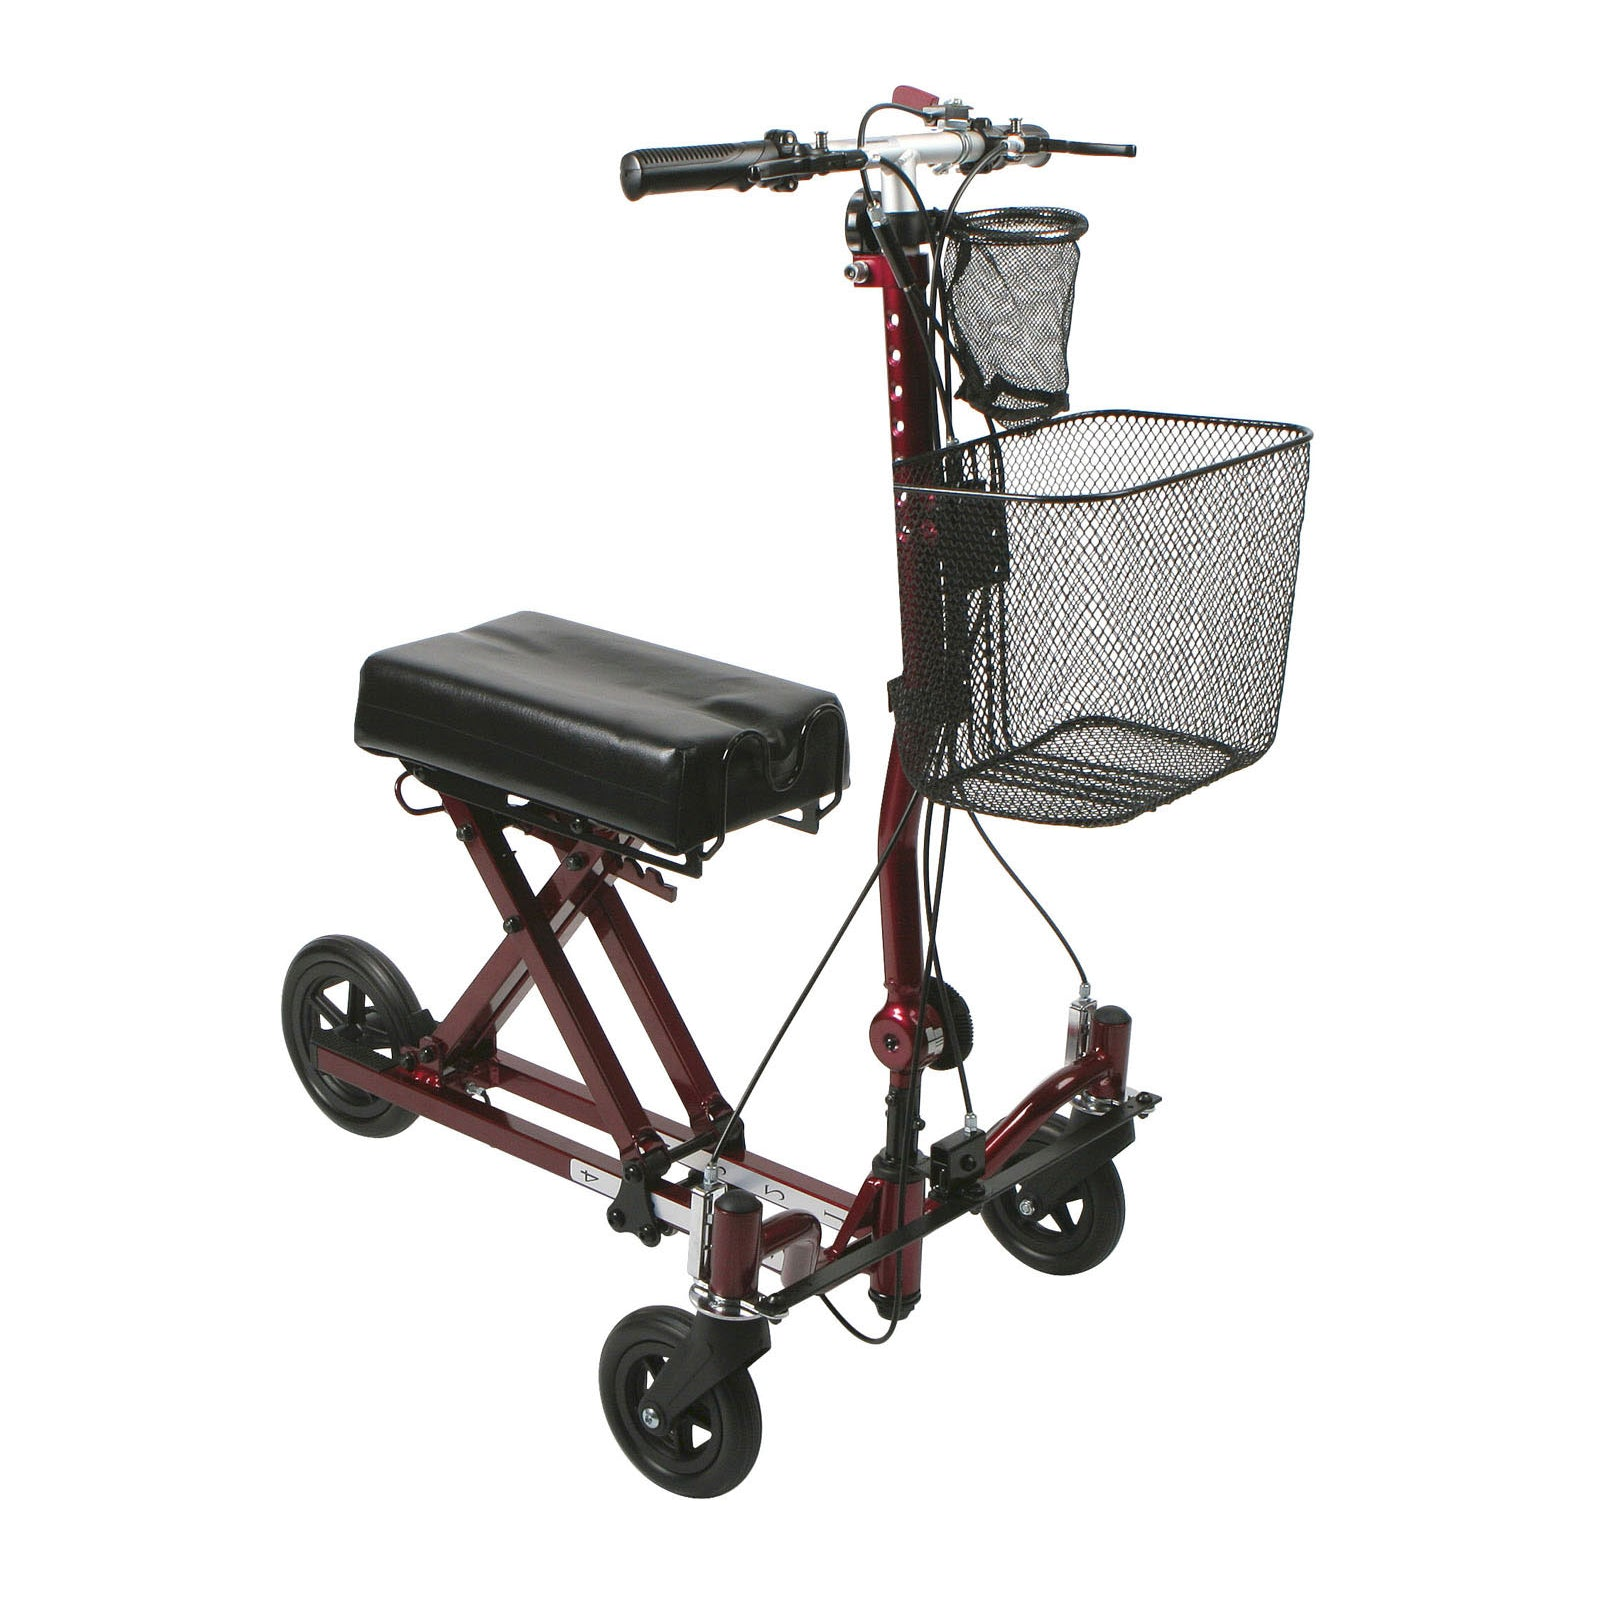 Medline 2nd Generation Weil 3-Wheel Knee Walker - Burgundy